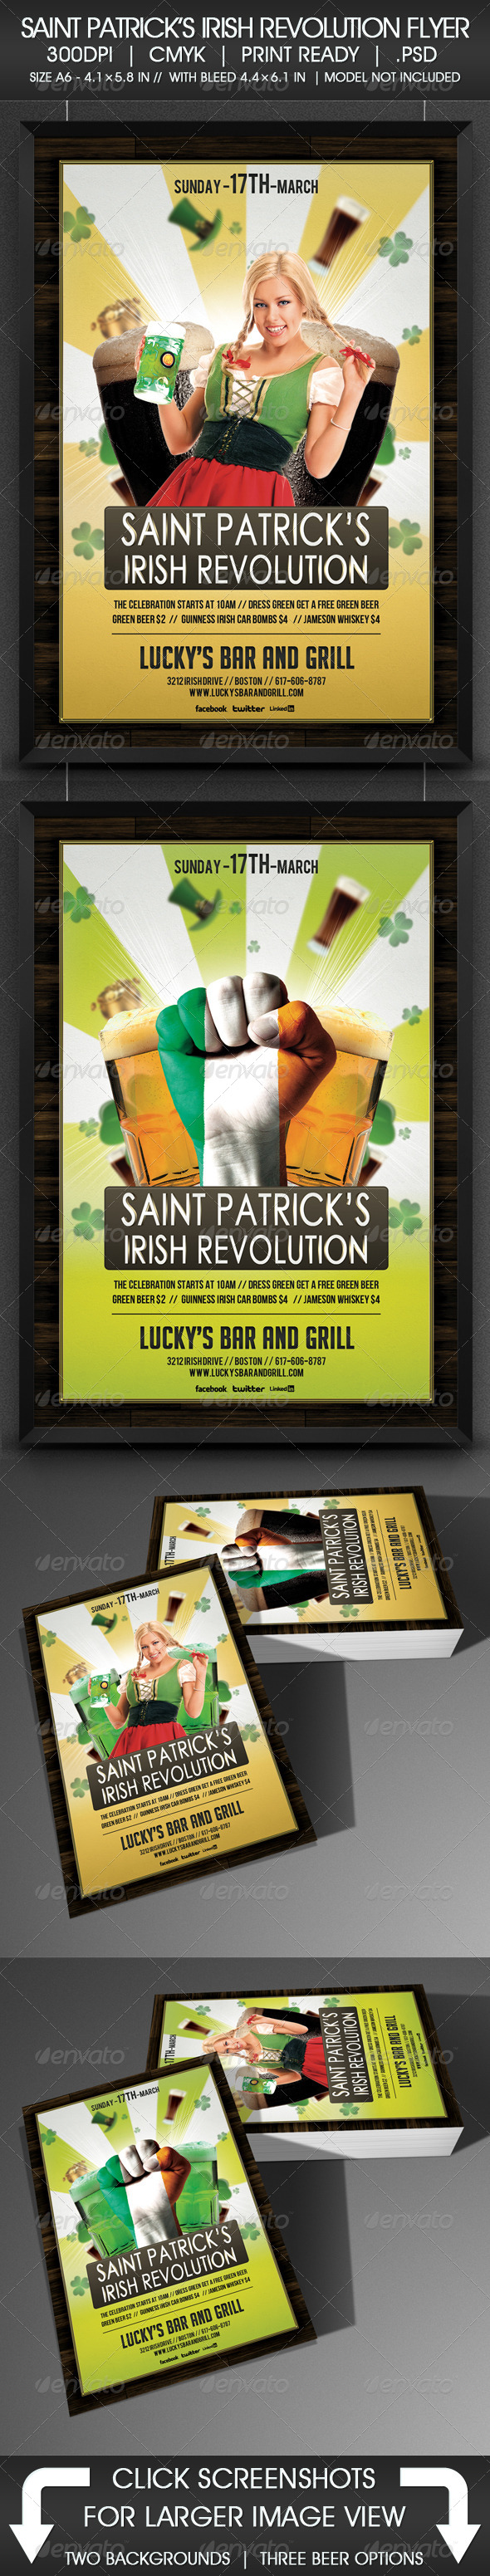 Saint Patrick's Irish Revolution Flyer - Holidays Events